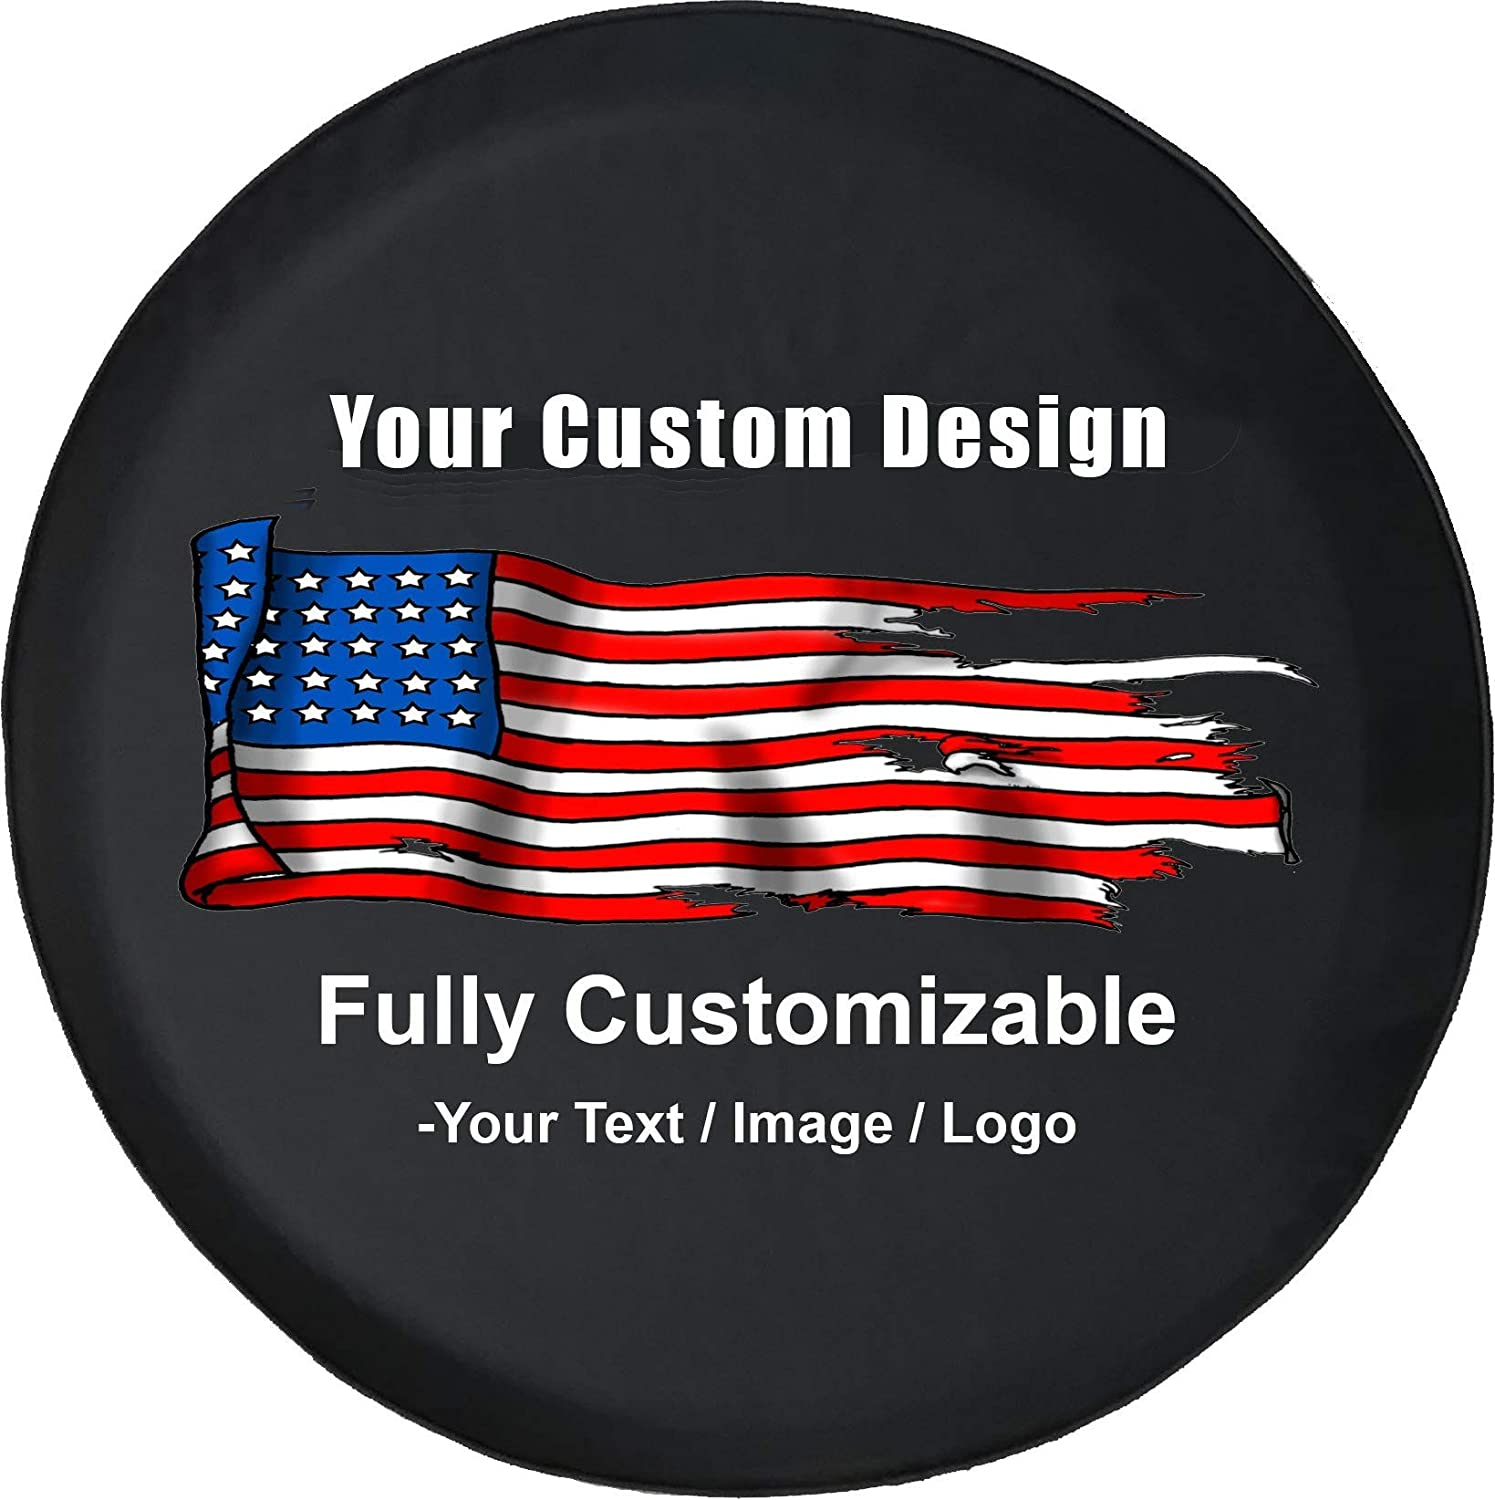 Universal Fit for SUV Camper RV Accessories 28 Inch Black American Unlimited Custom Spare Tire Cover You Design Full Color Personalized Tire Cover